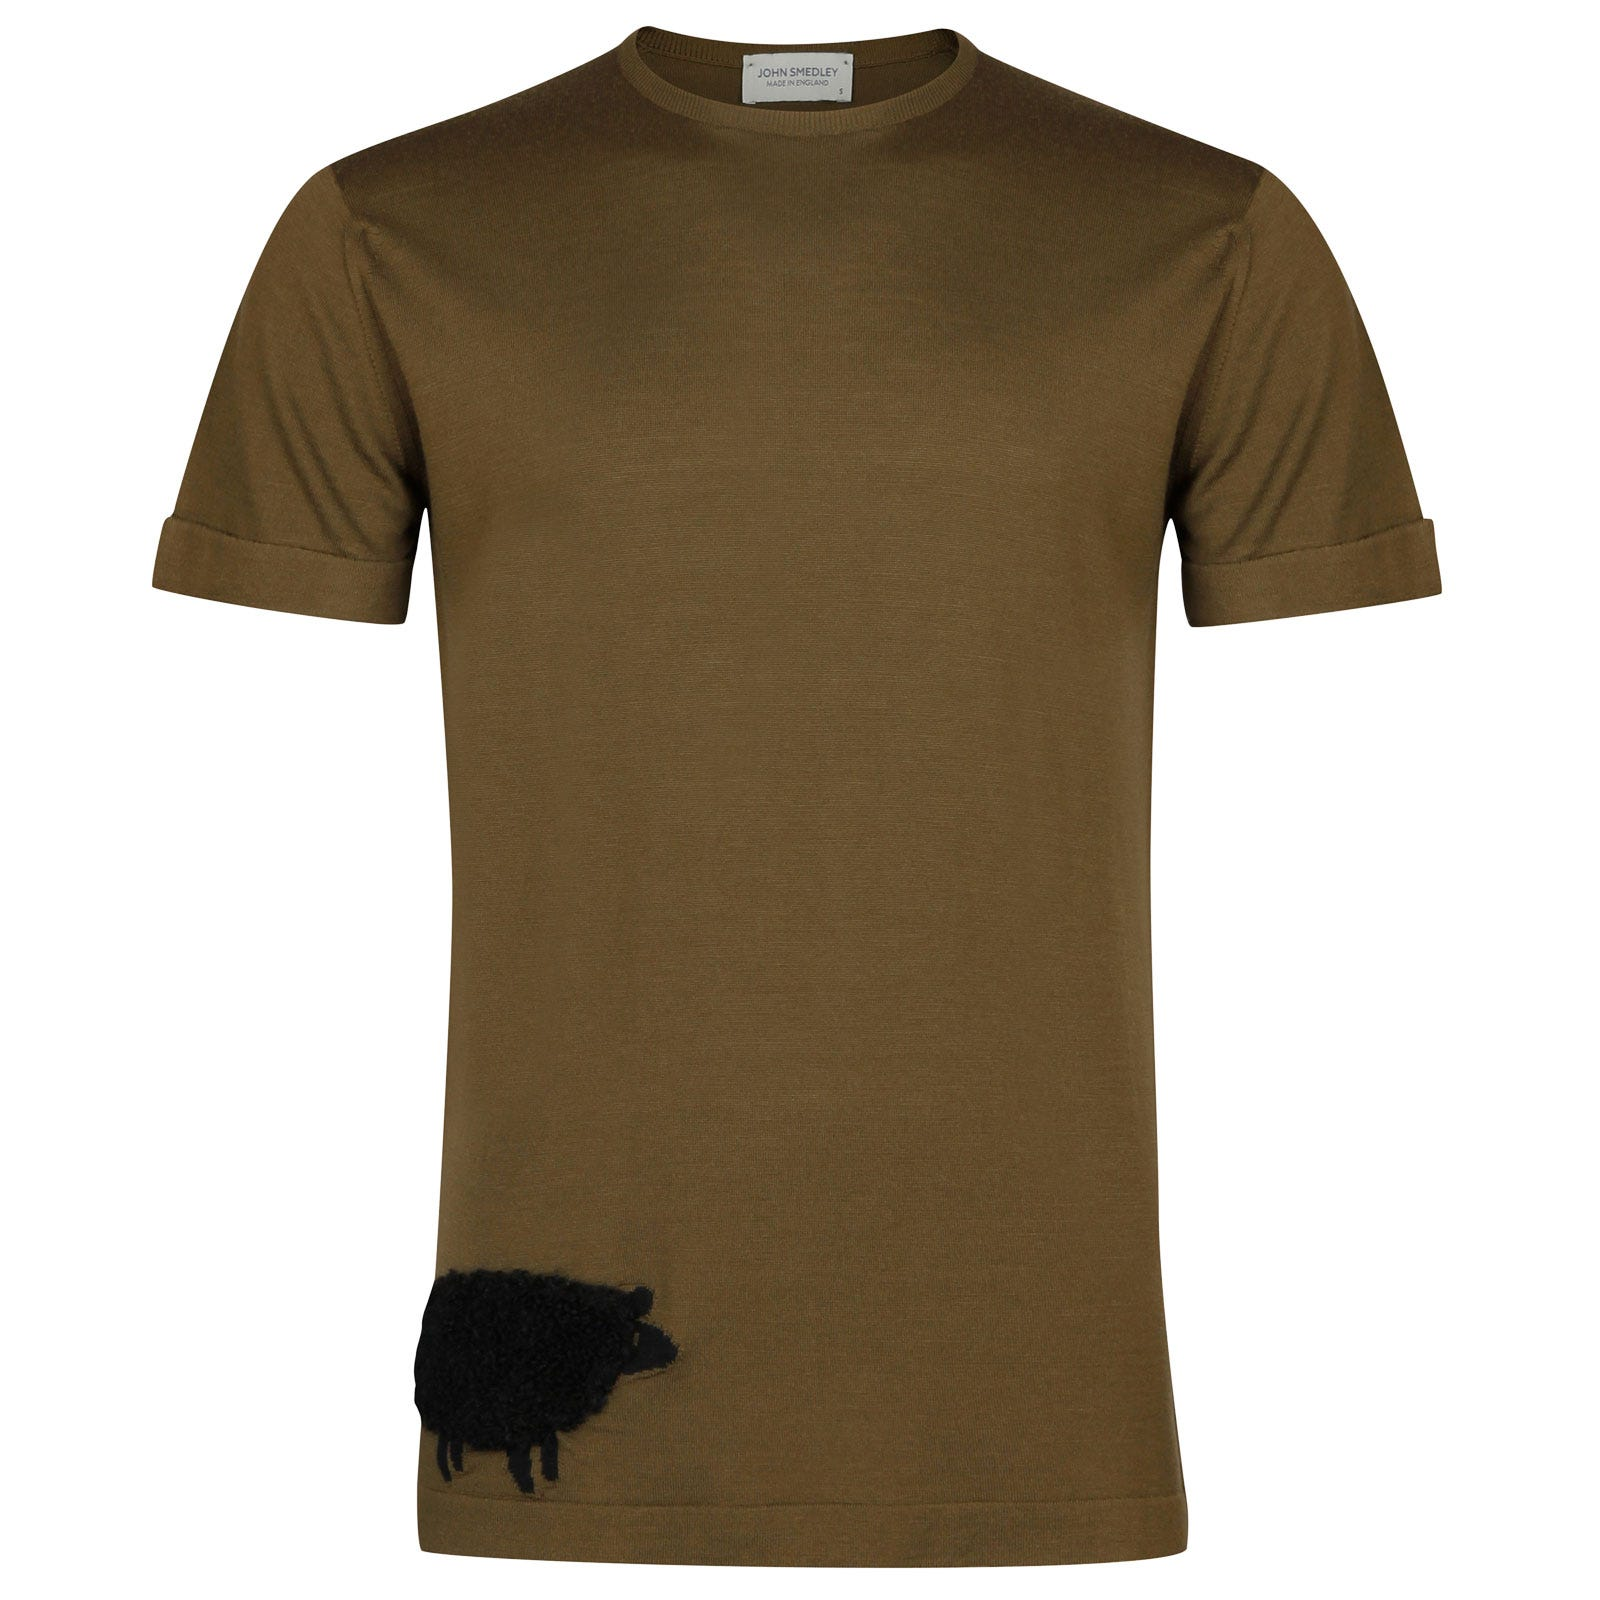 John Smedley bleat Merino Wool T-shirt in Kielder Green/Black-XL